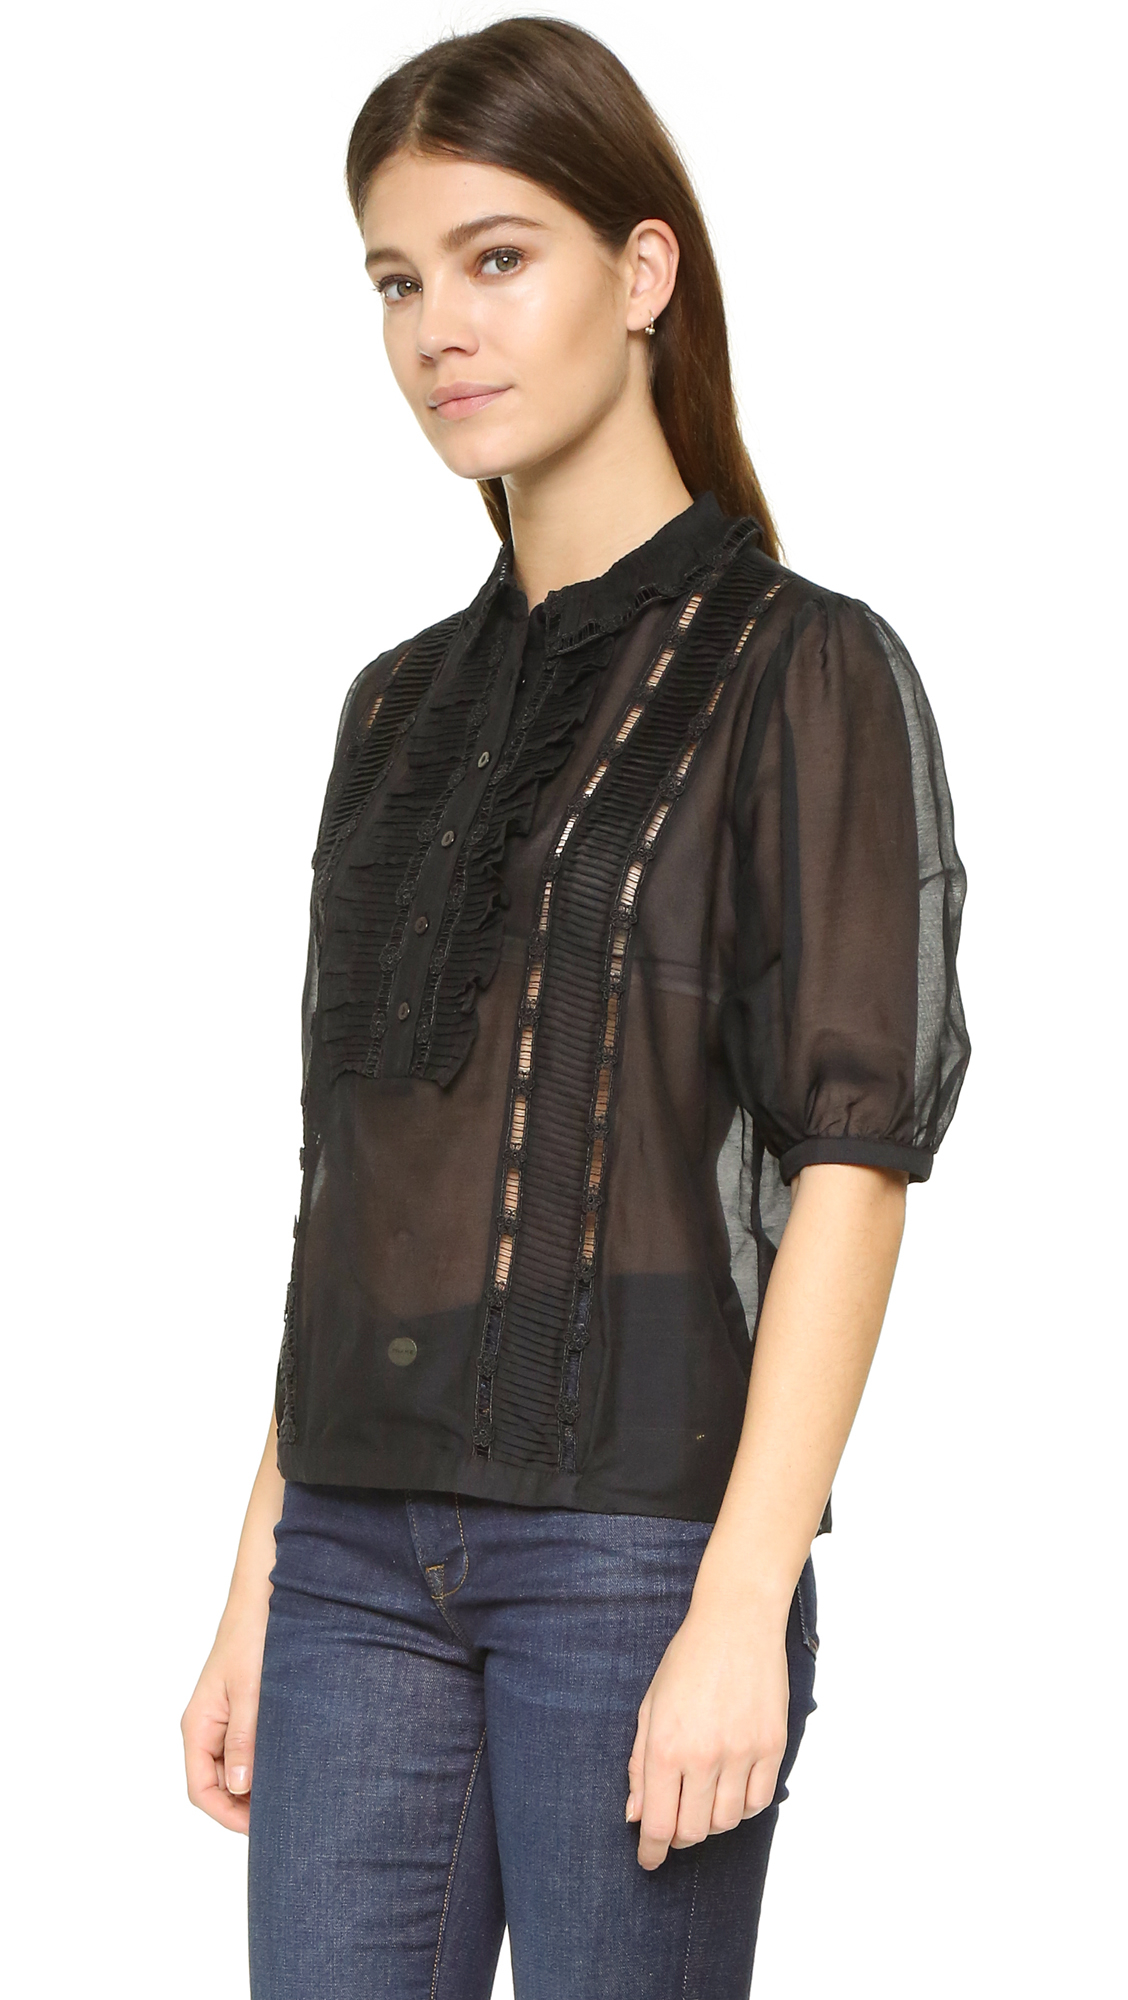 The Kooples Lace Detailed Top In Black Lyst